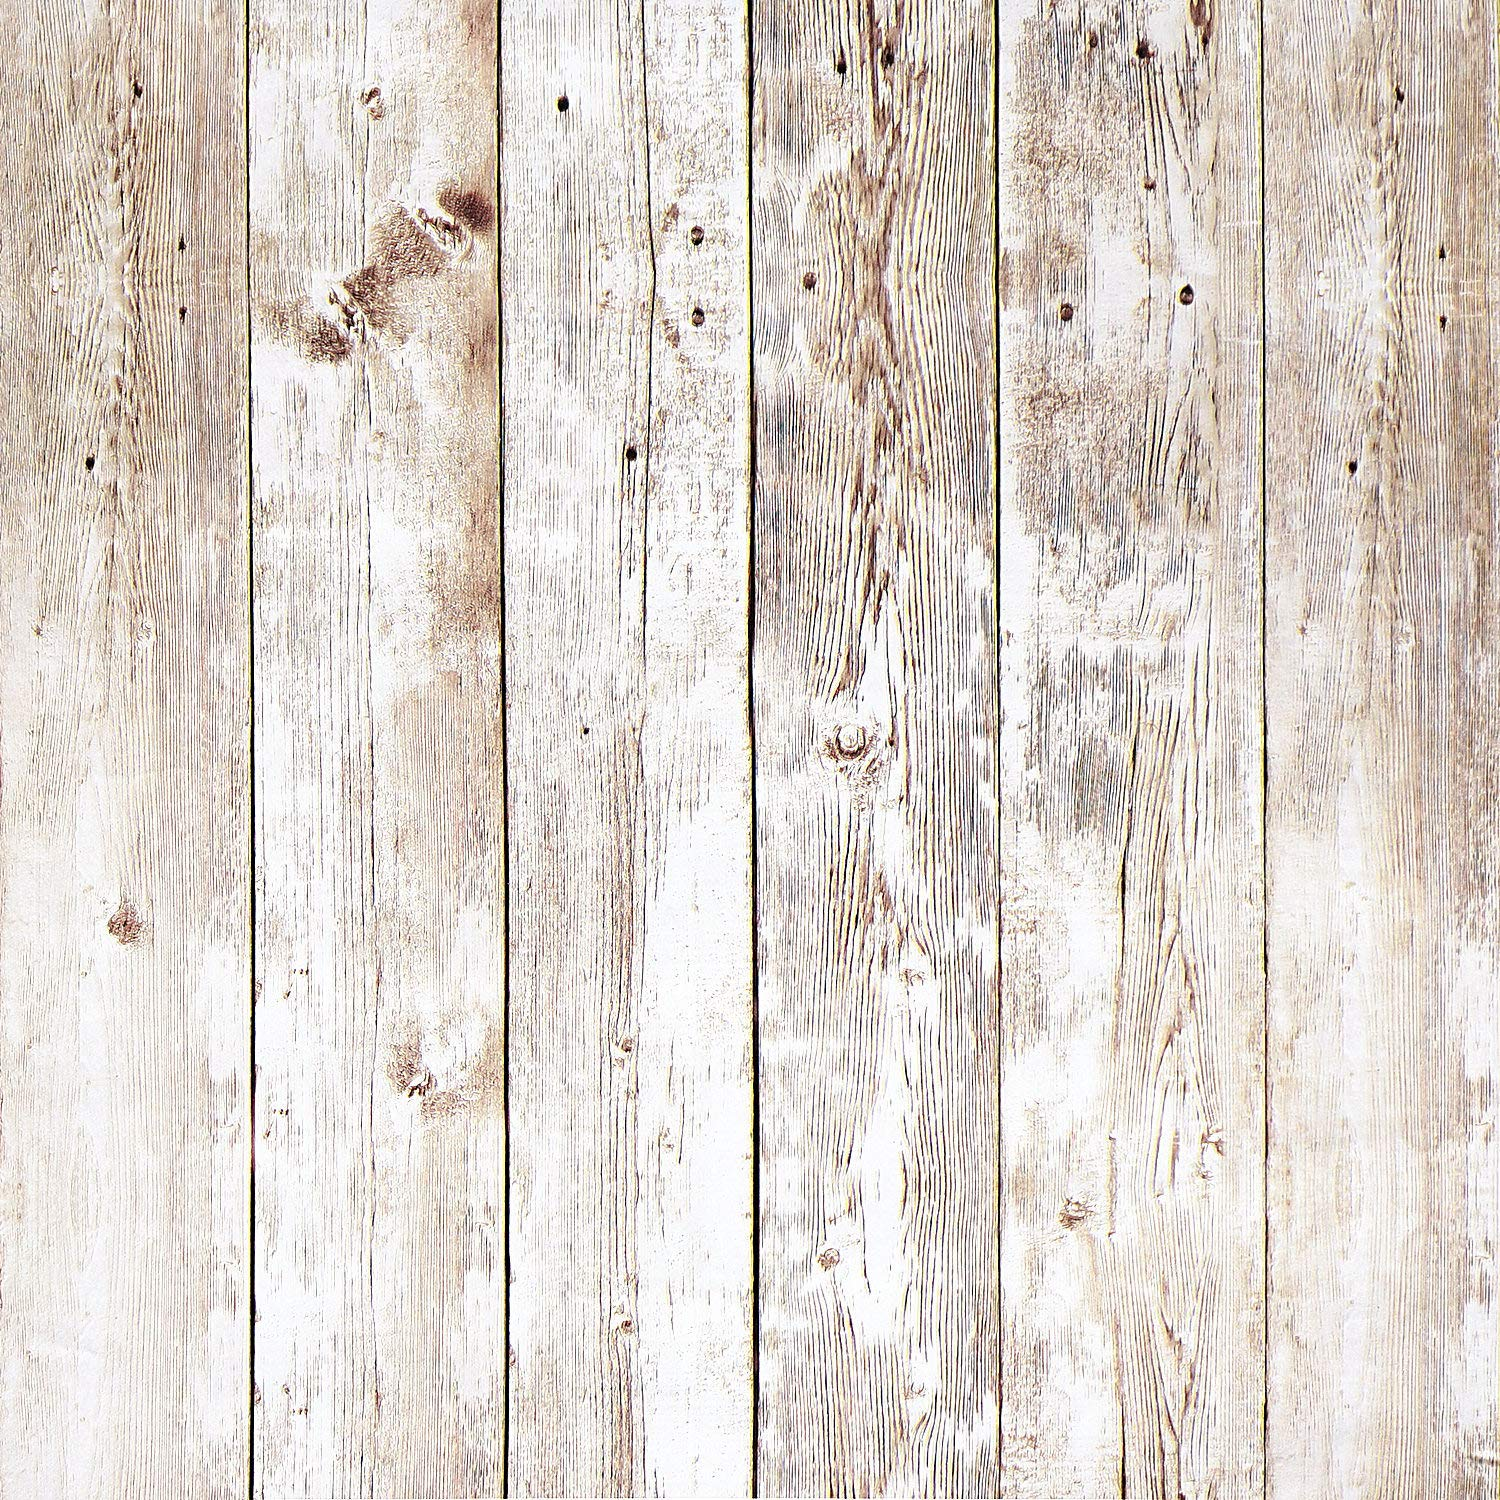 Wood Contact Paper 17.8in x 16.4ft Wood Peel and Stick Wallpaper Self-Adhesive Removable Wall Covering Decorative Vintage Wood Panel Faux Distressed Wood Plank Wooden Grain Film Vinyl Decal Roll